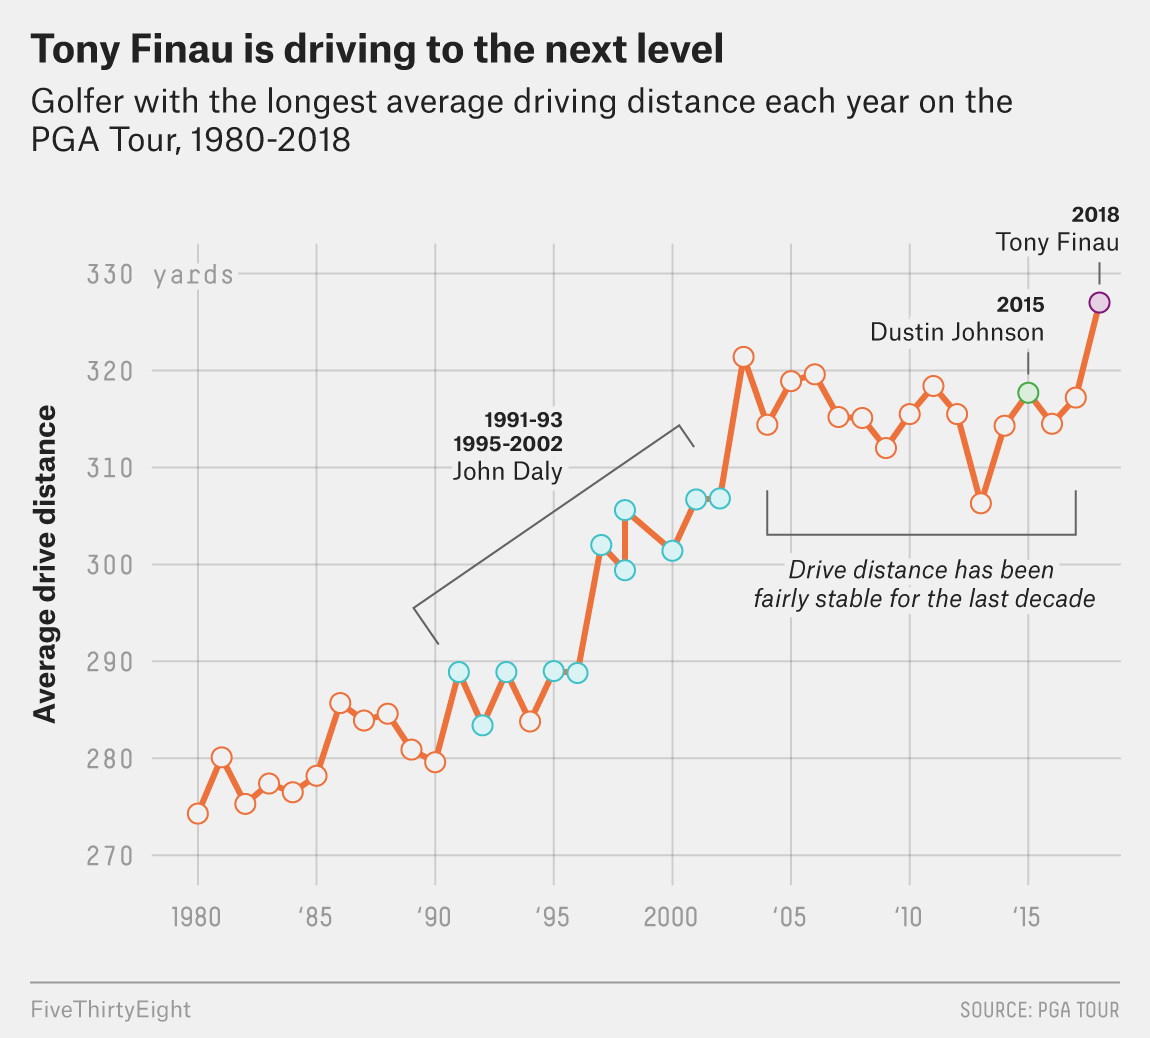 Meet The Golfer Who Could Smash The PGA Tour Driving Record ...